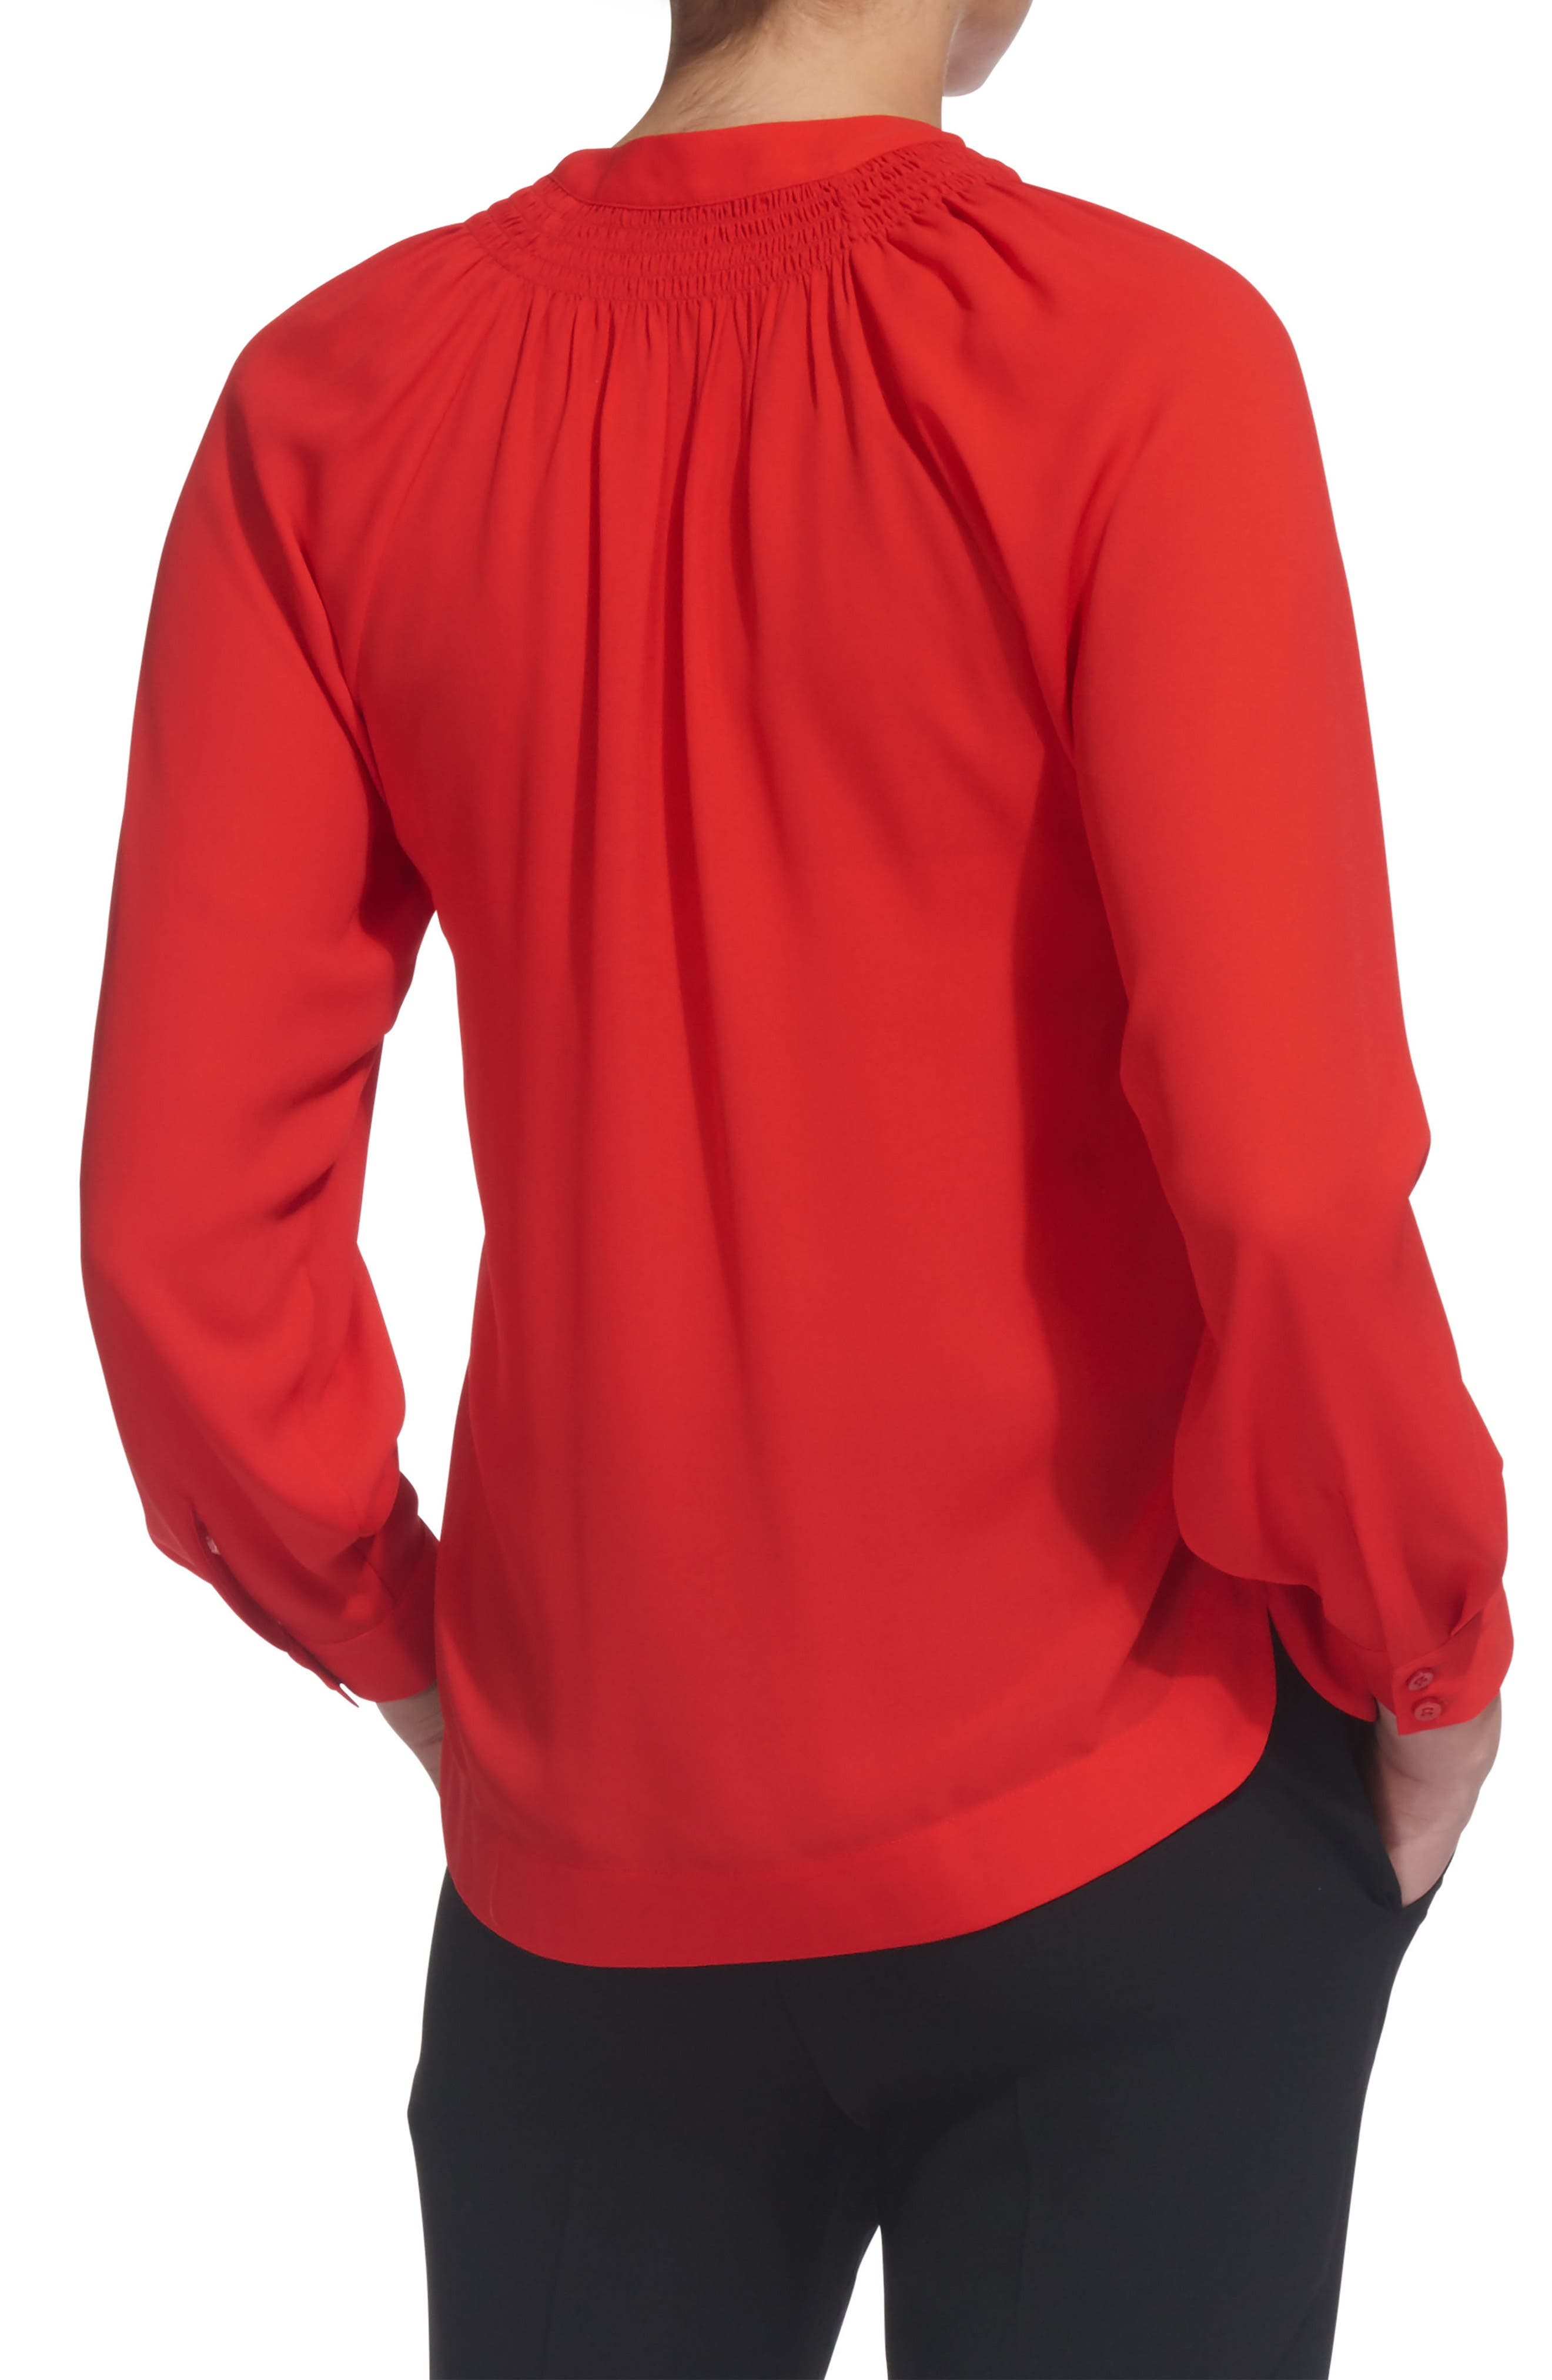 Catalina V-Neck Top,                             Alternate thumbnail 2, color,                             Red